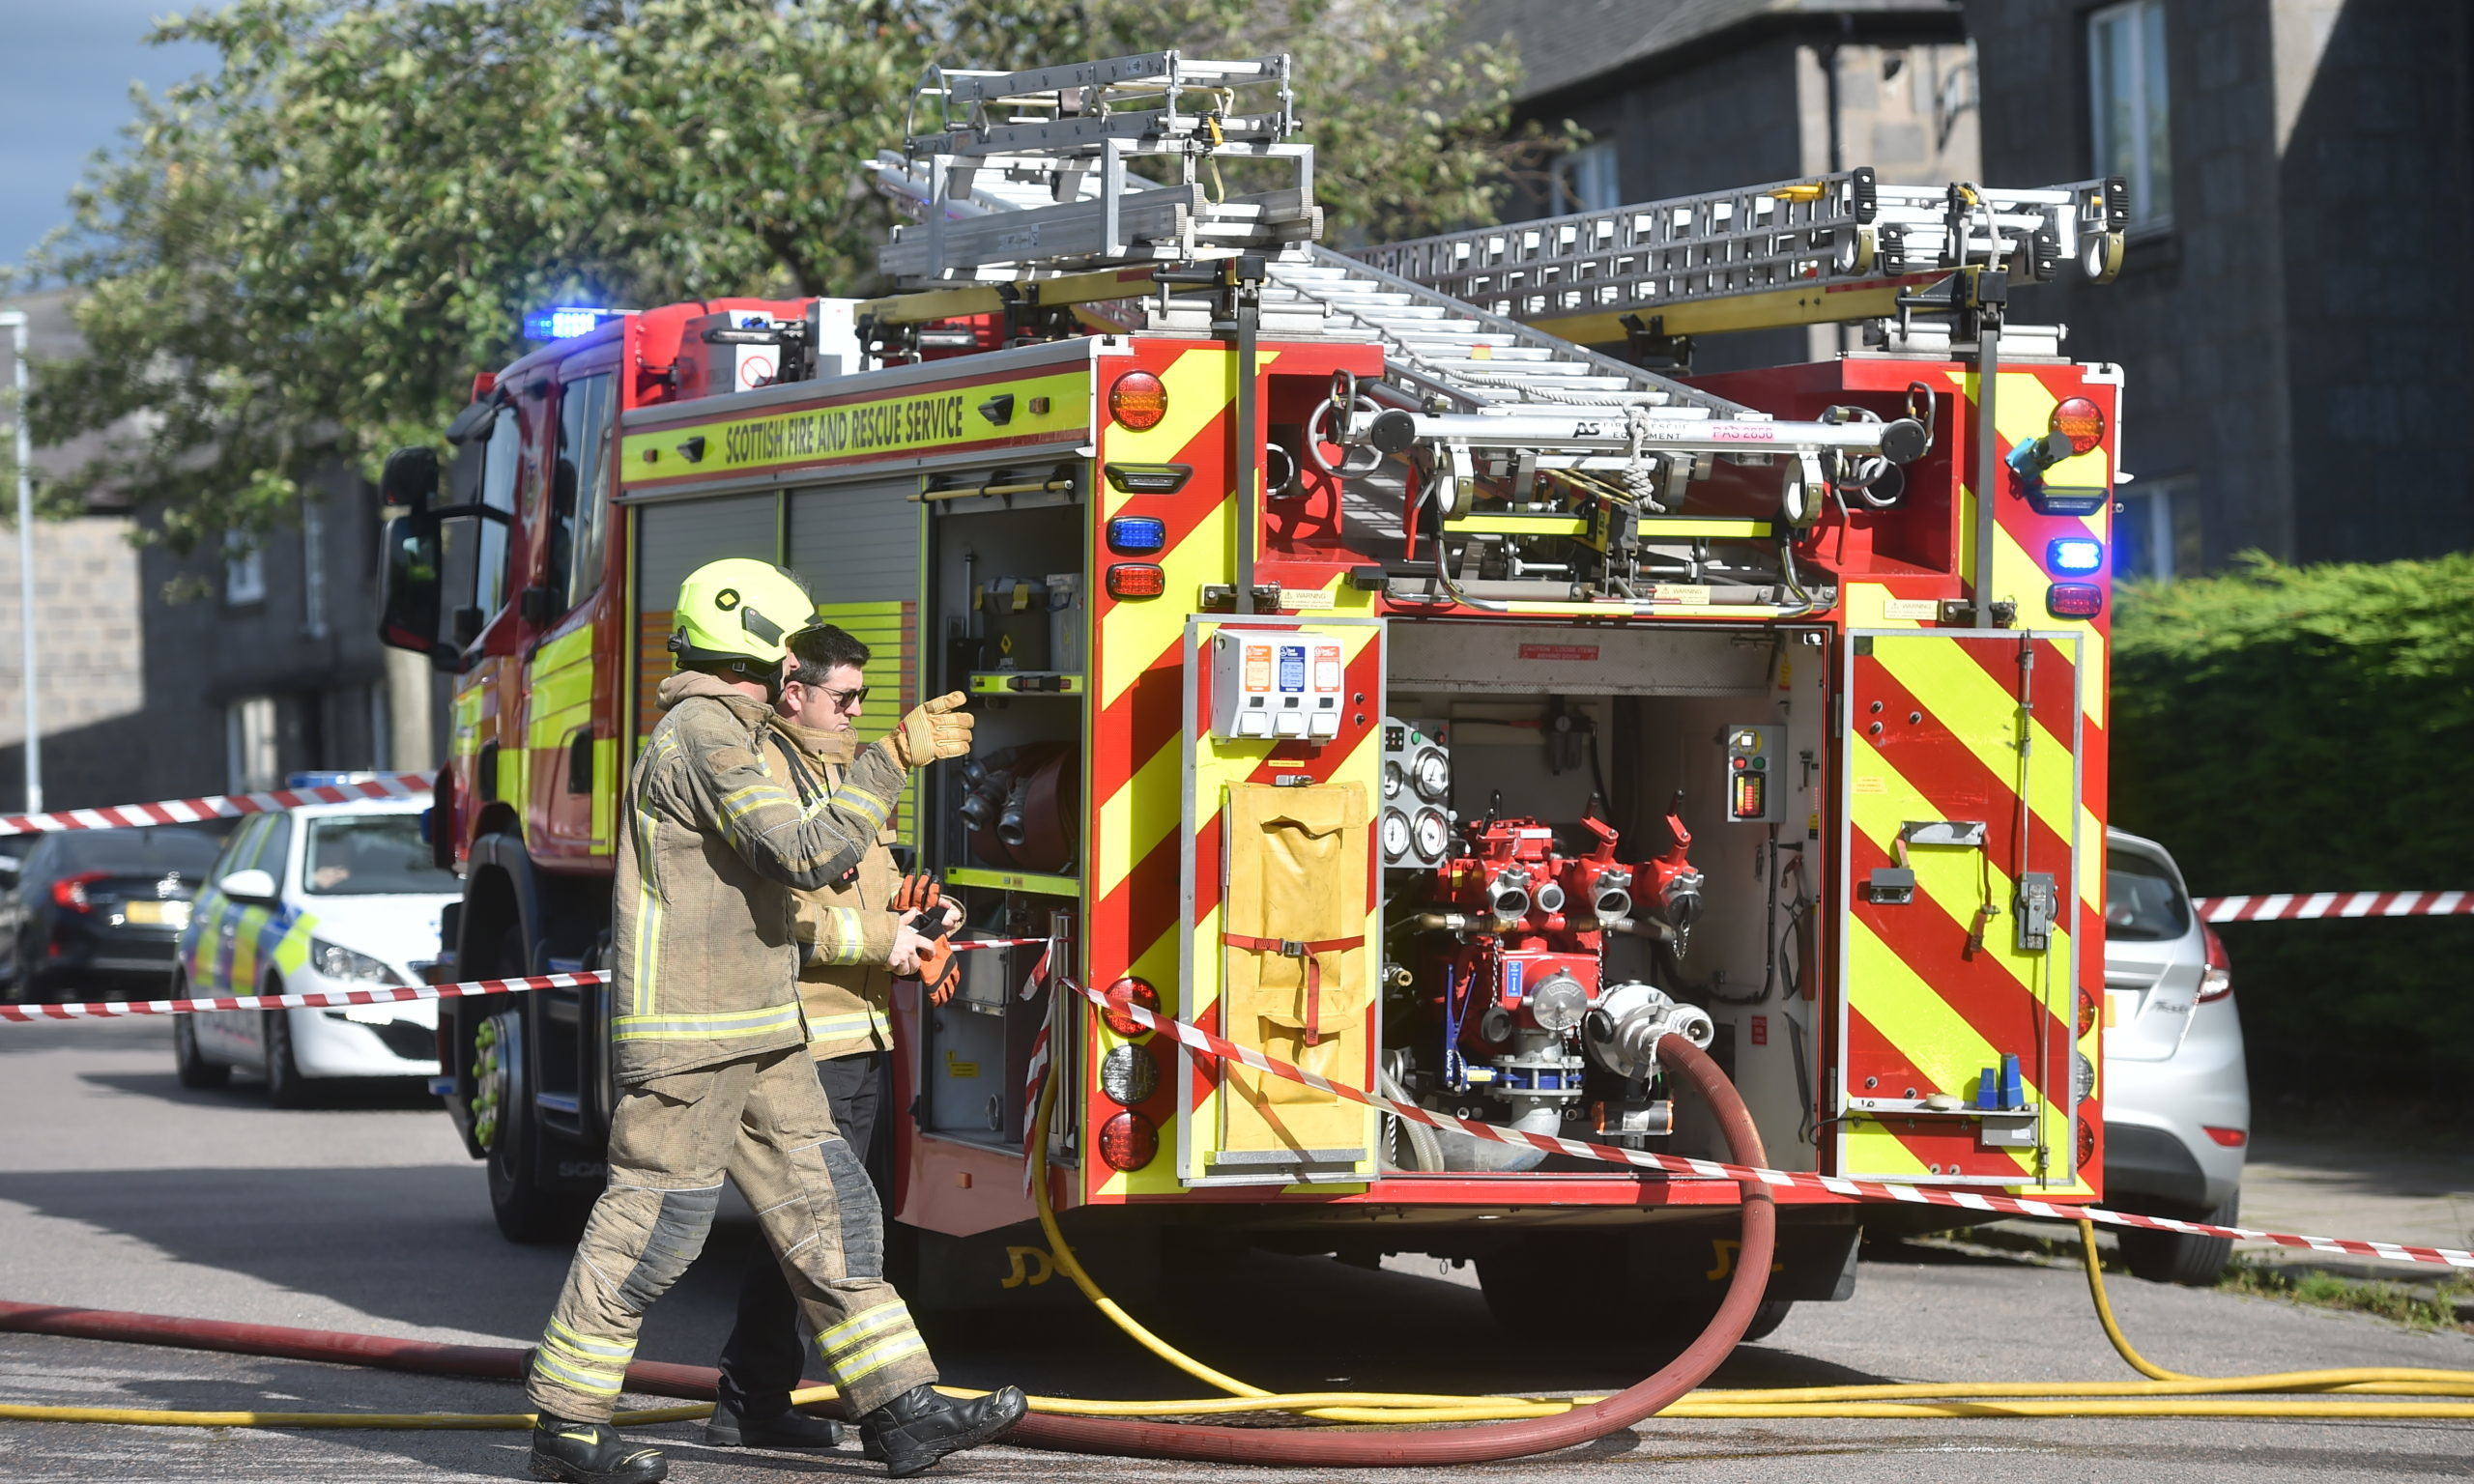 Fire and rescue services in attendance at Polwarth Road. Photo by Scott Baxter